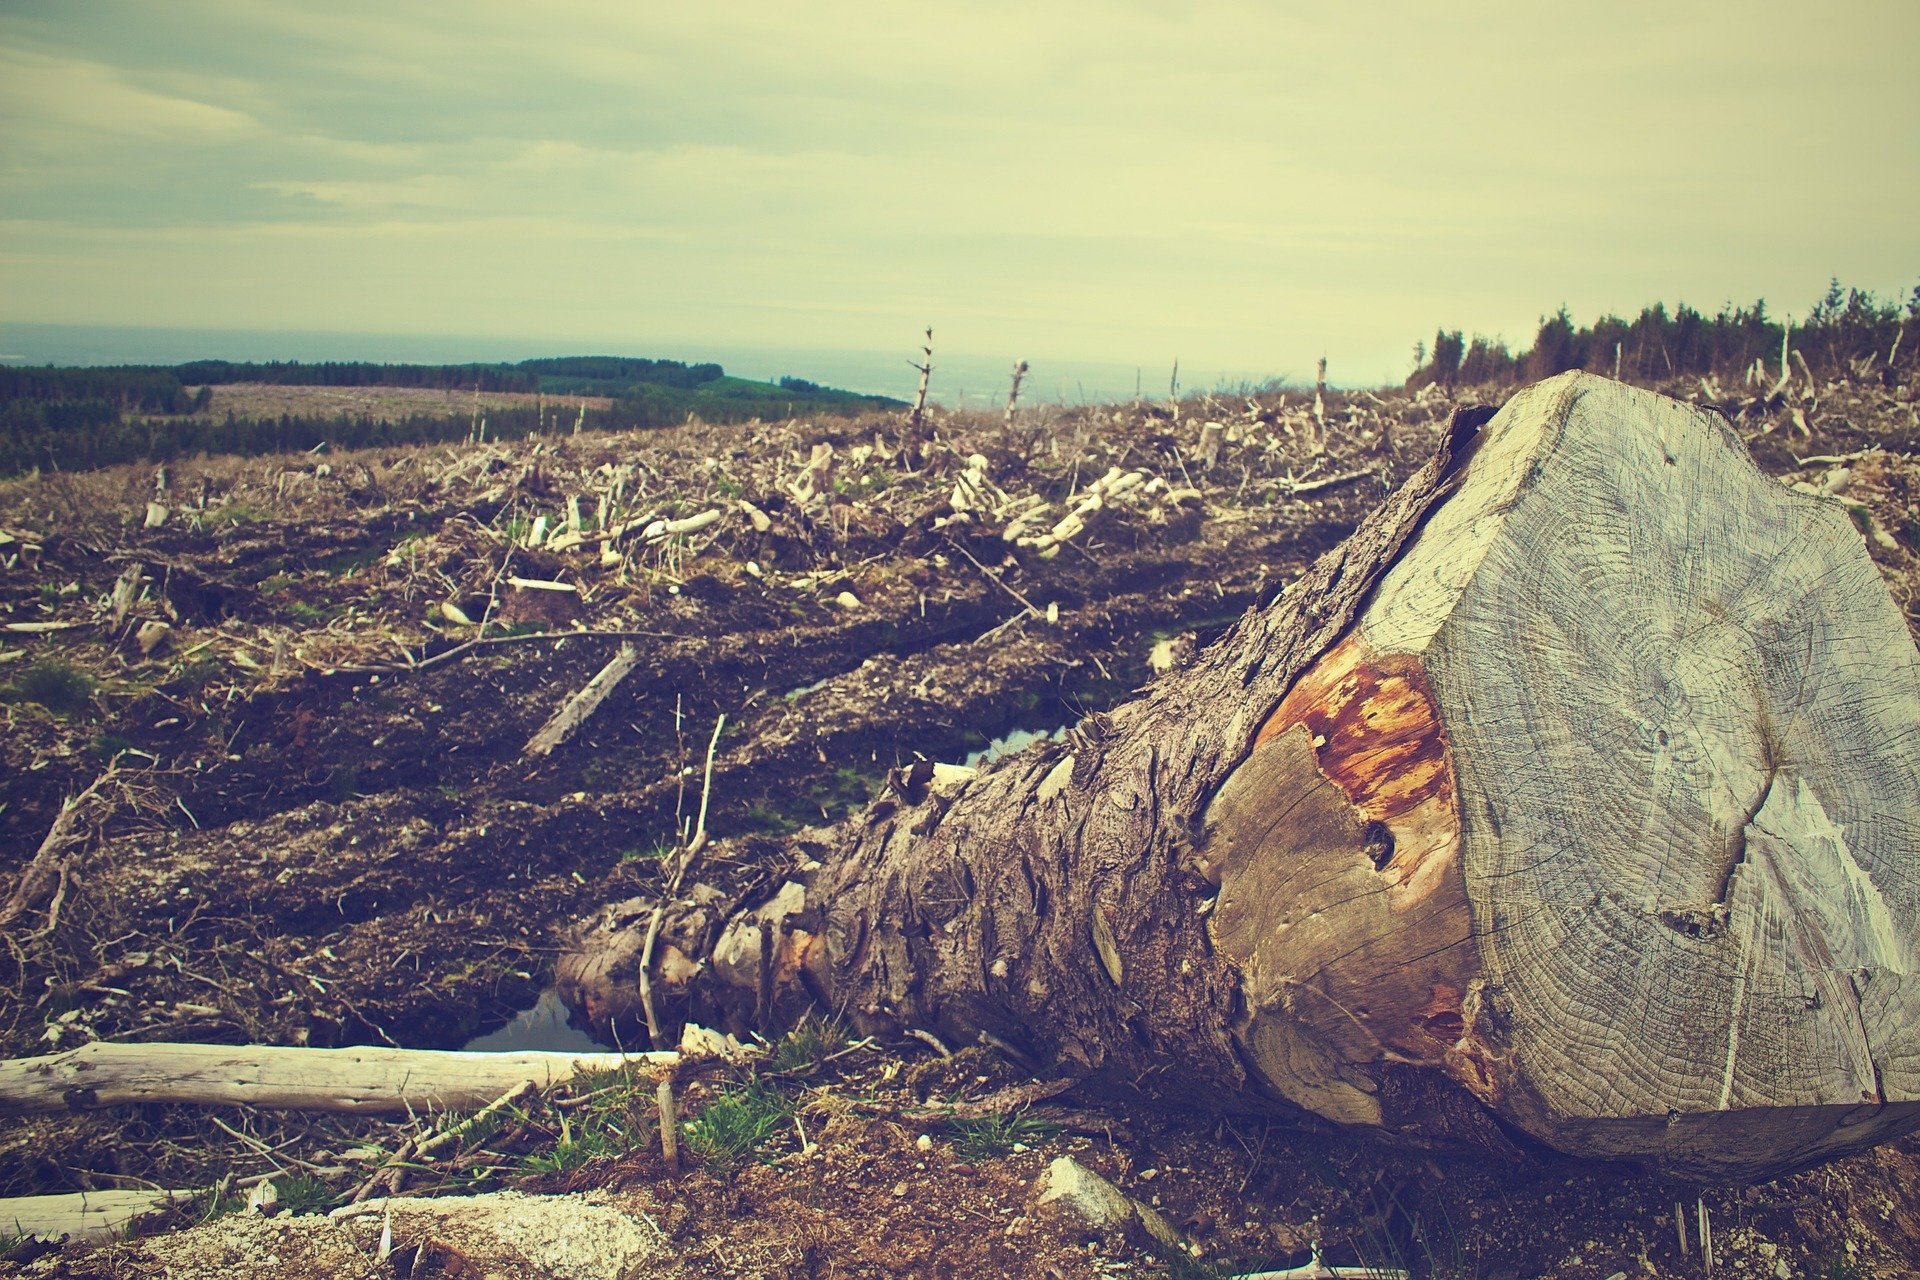 Cut down tree in deforested field